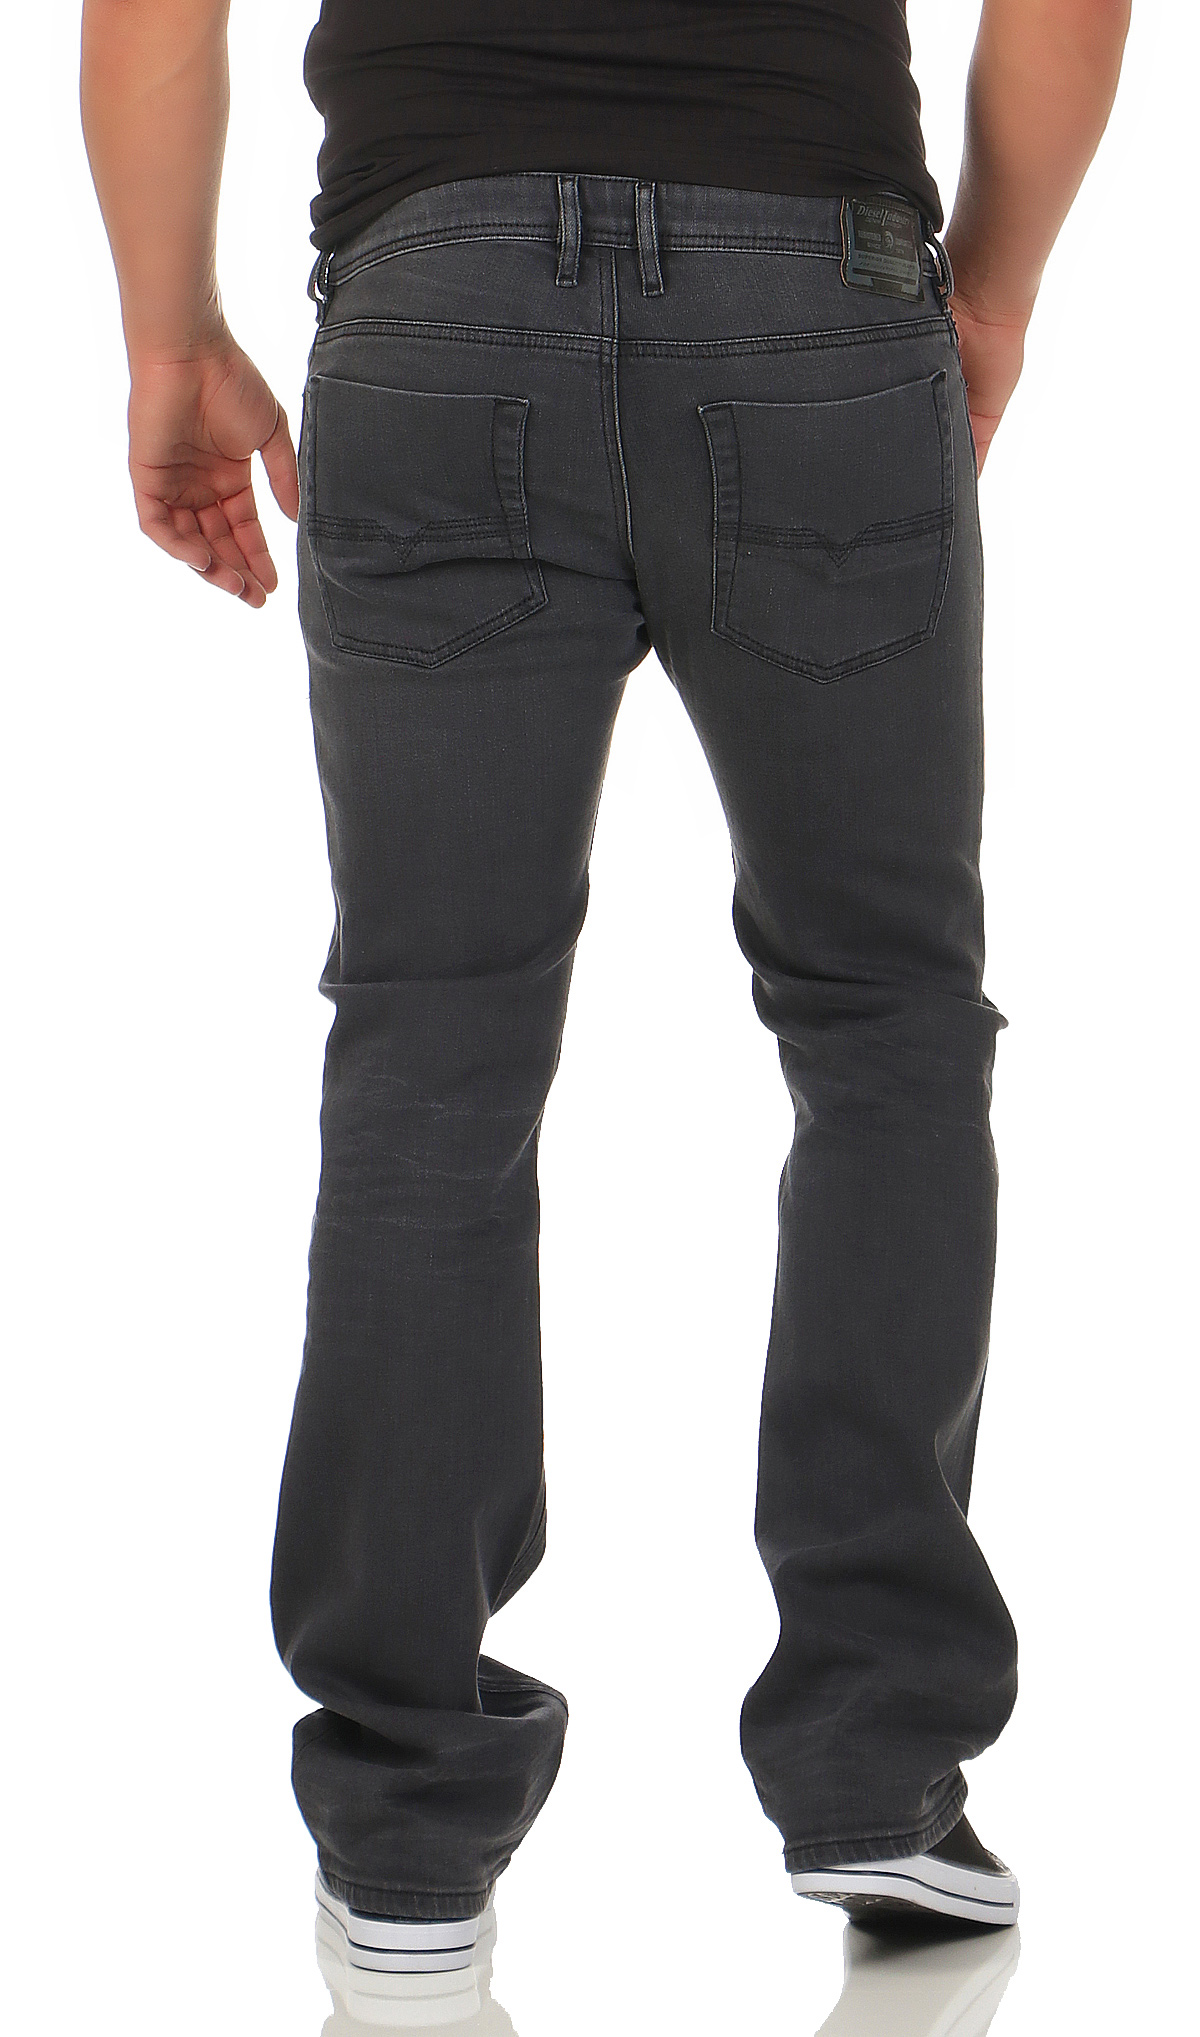 diesel herren jeans zatiny 0859x boot cut stretch hose regular bootcut grau neu ebay. Black Bedroom Furniture Sets. Home Design Ideas